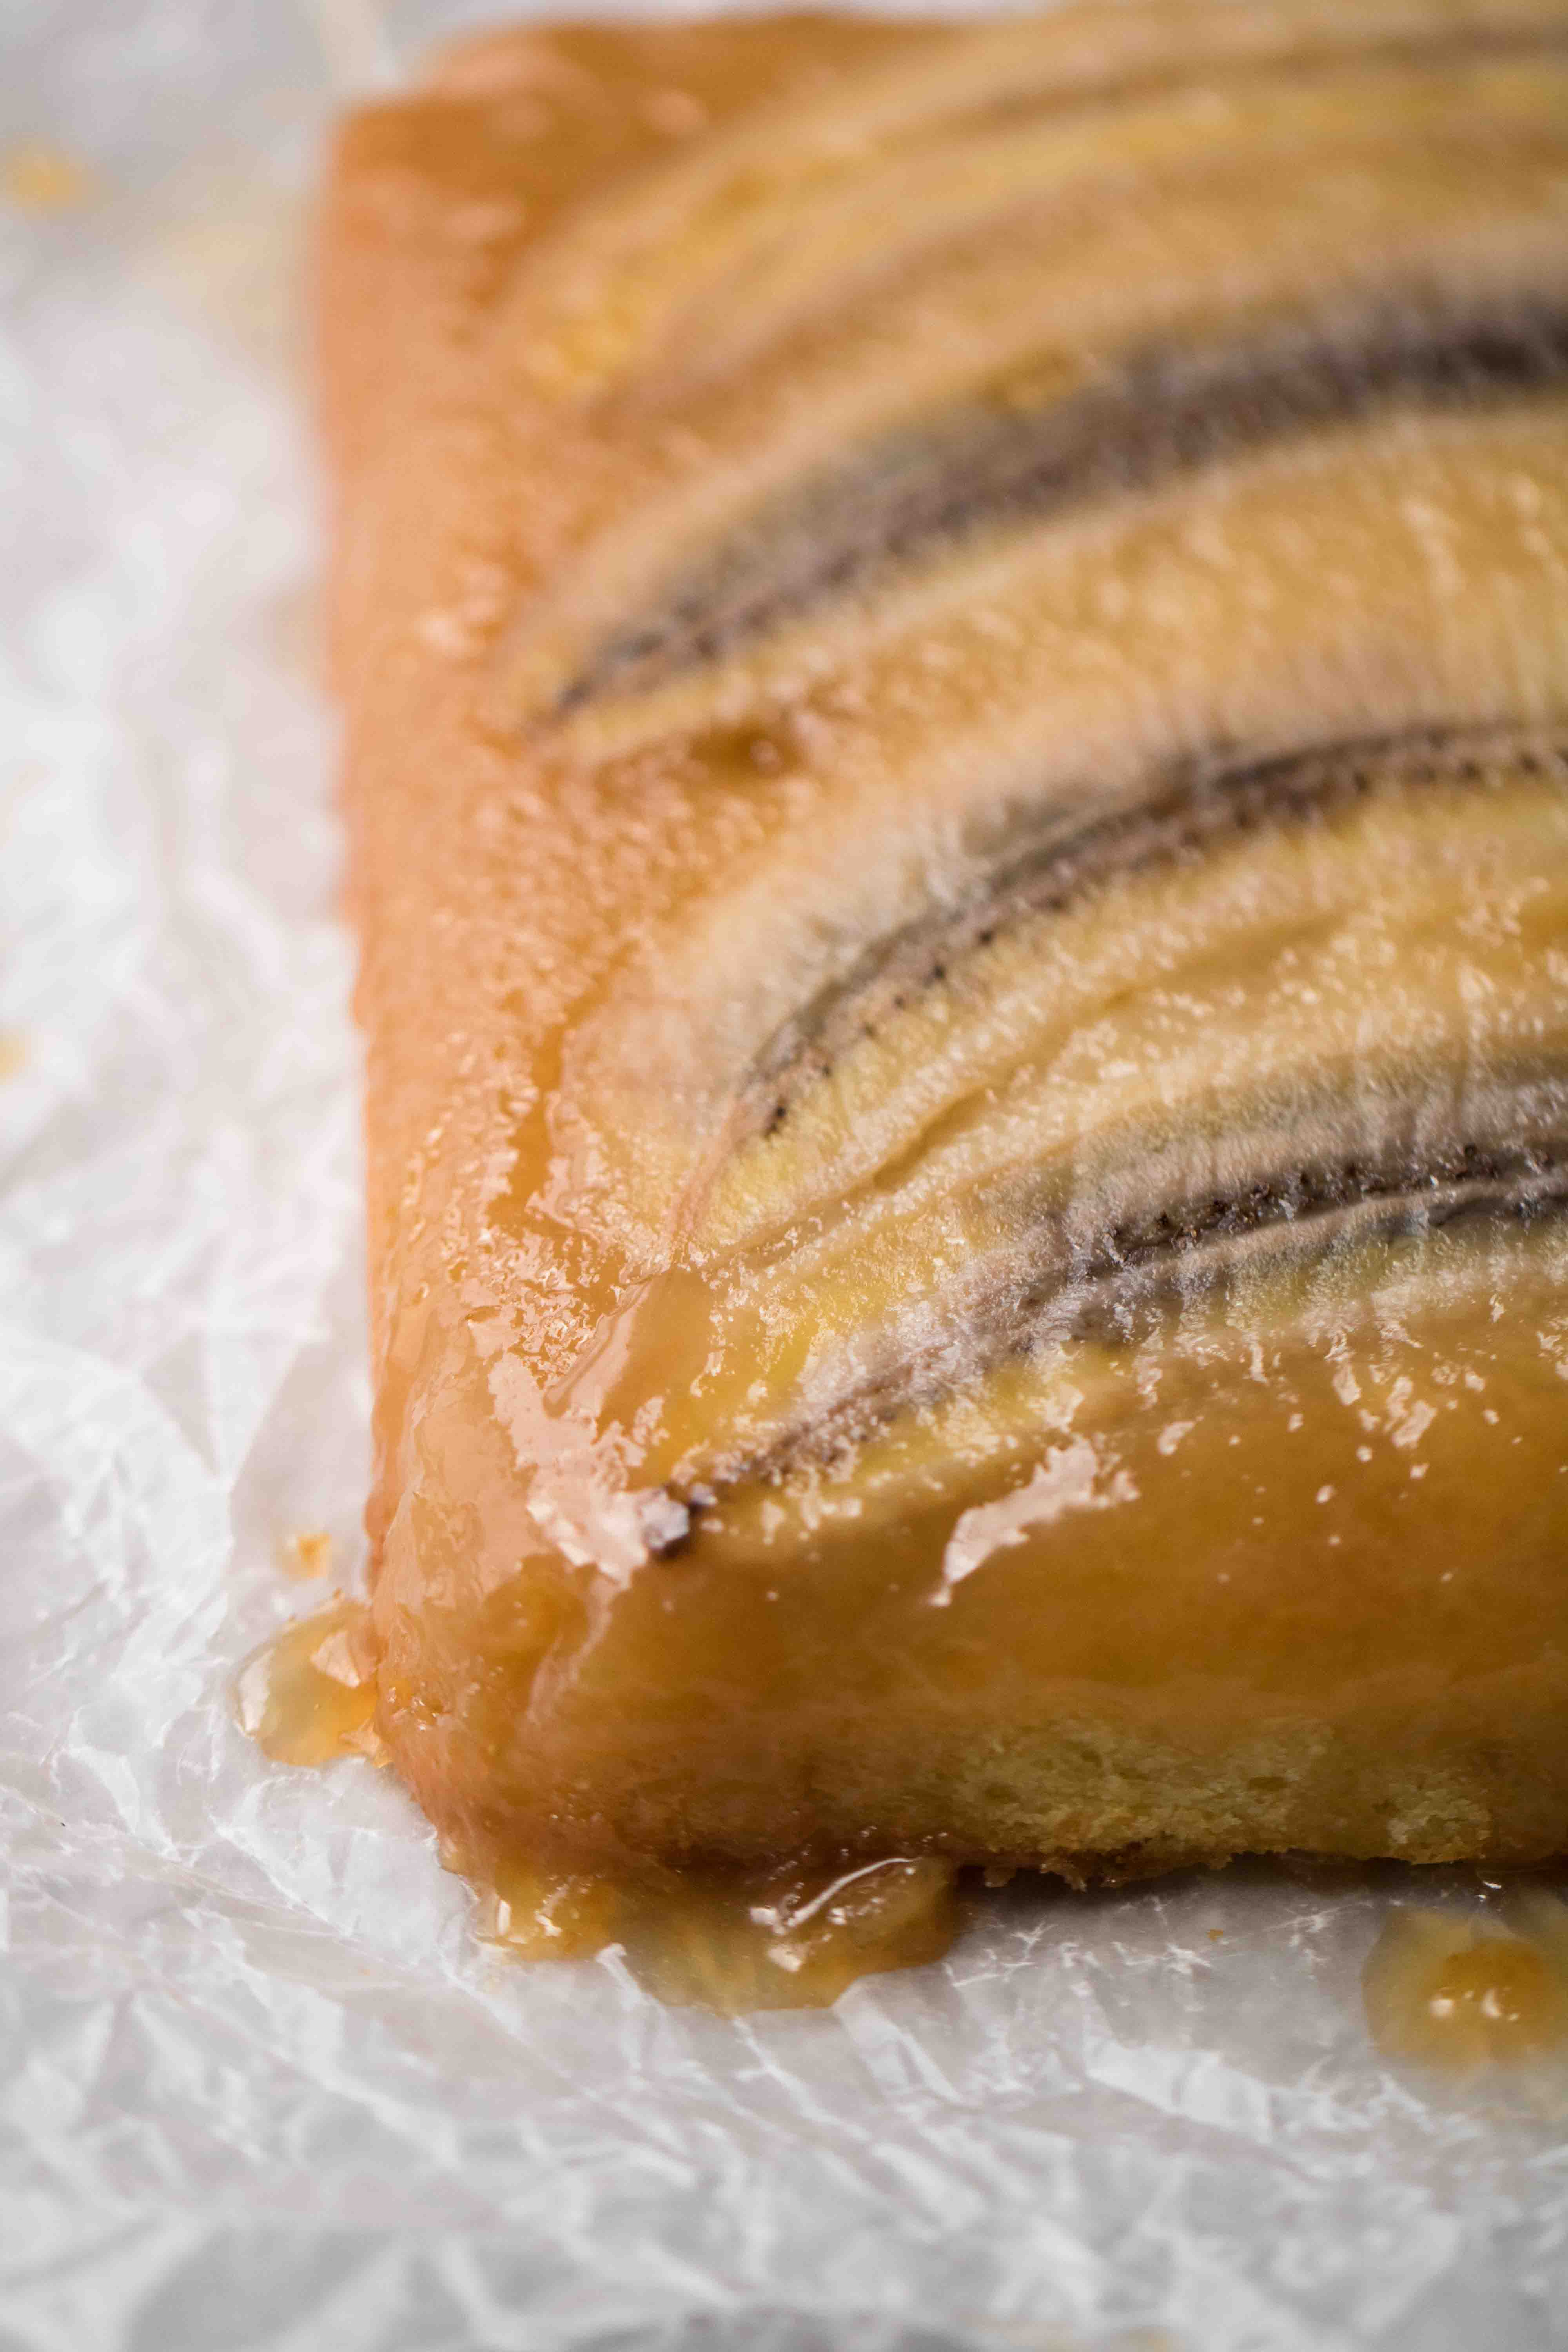 The most buttery upside down banana cake texture